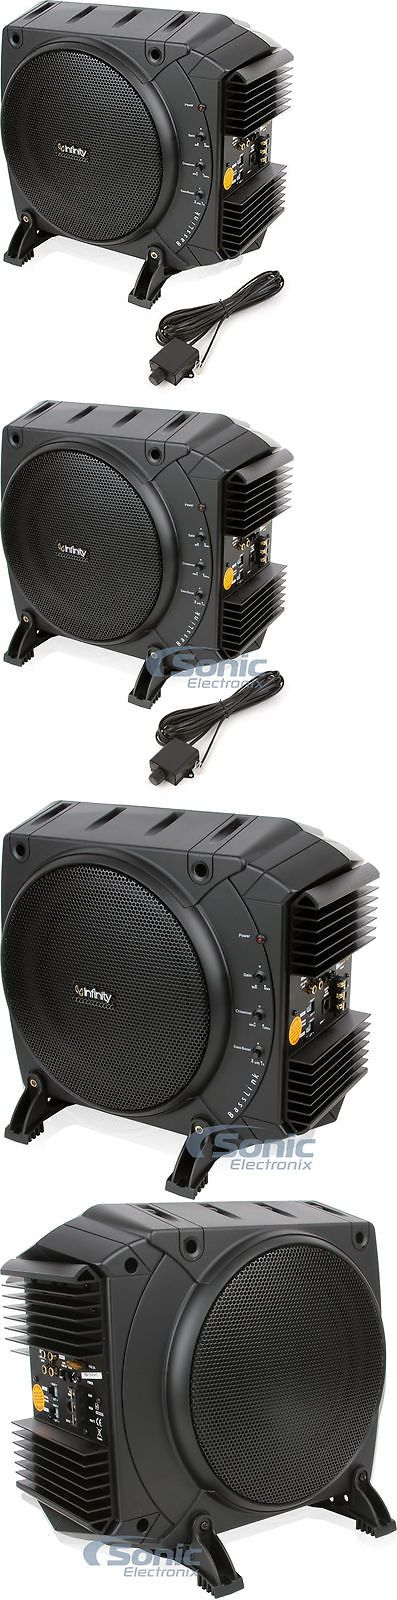 Car Subwoofers: Infinity Basslink 200W Rms 10 Class D Amplified Subwoofer Bass System BUY IT NOW ONLY: $169.99